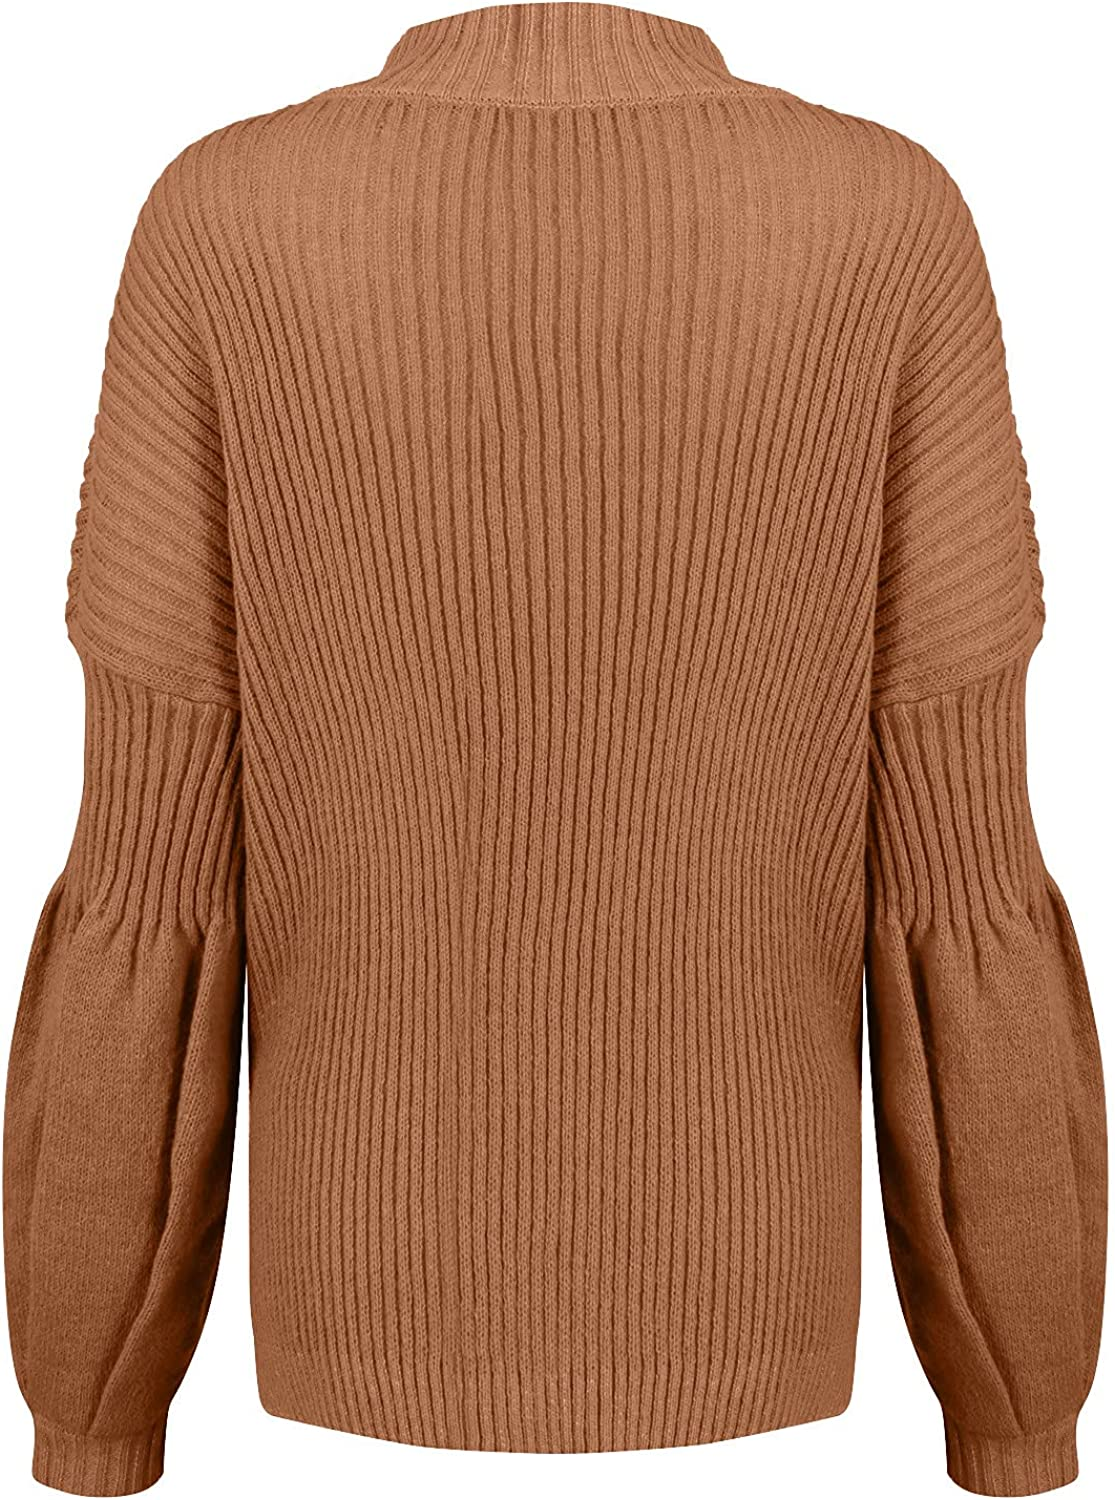 Women's Ribbed Knitted Sweater High Collar O-Neck Lantern Sleeve Pullover Tops Basic Solid Color Lightweight Blouse